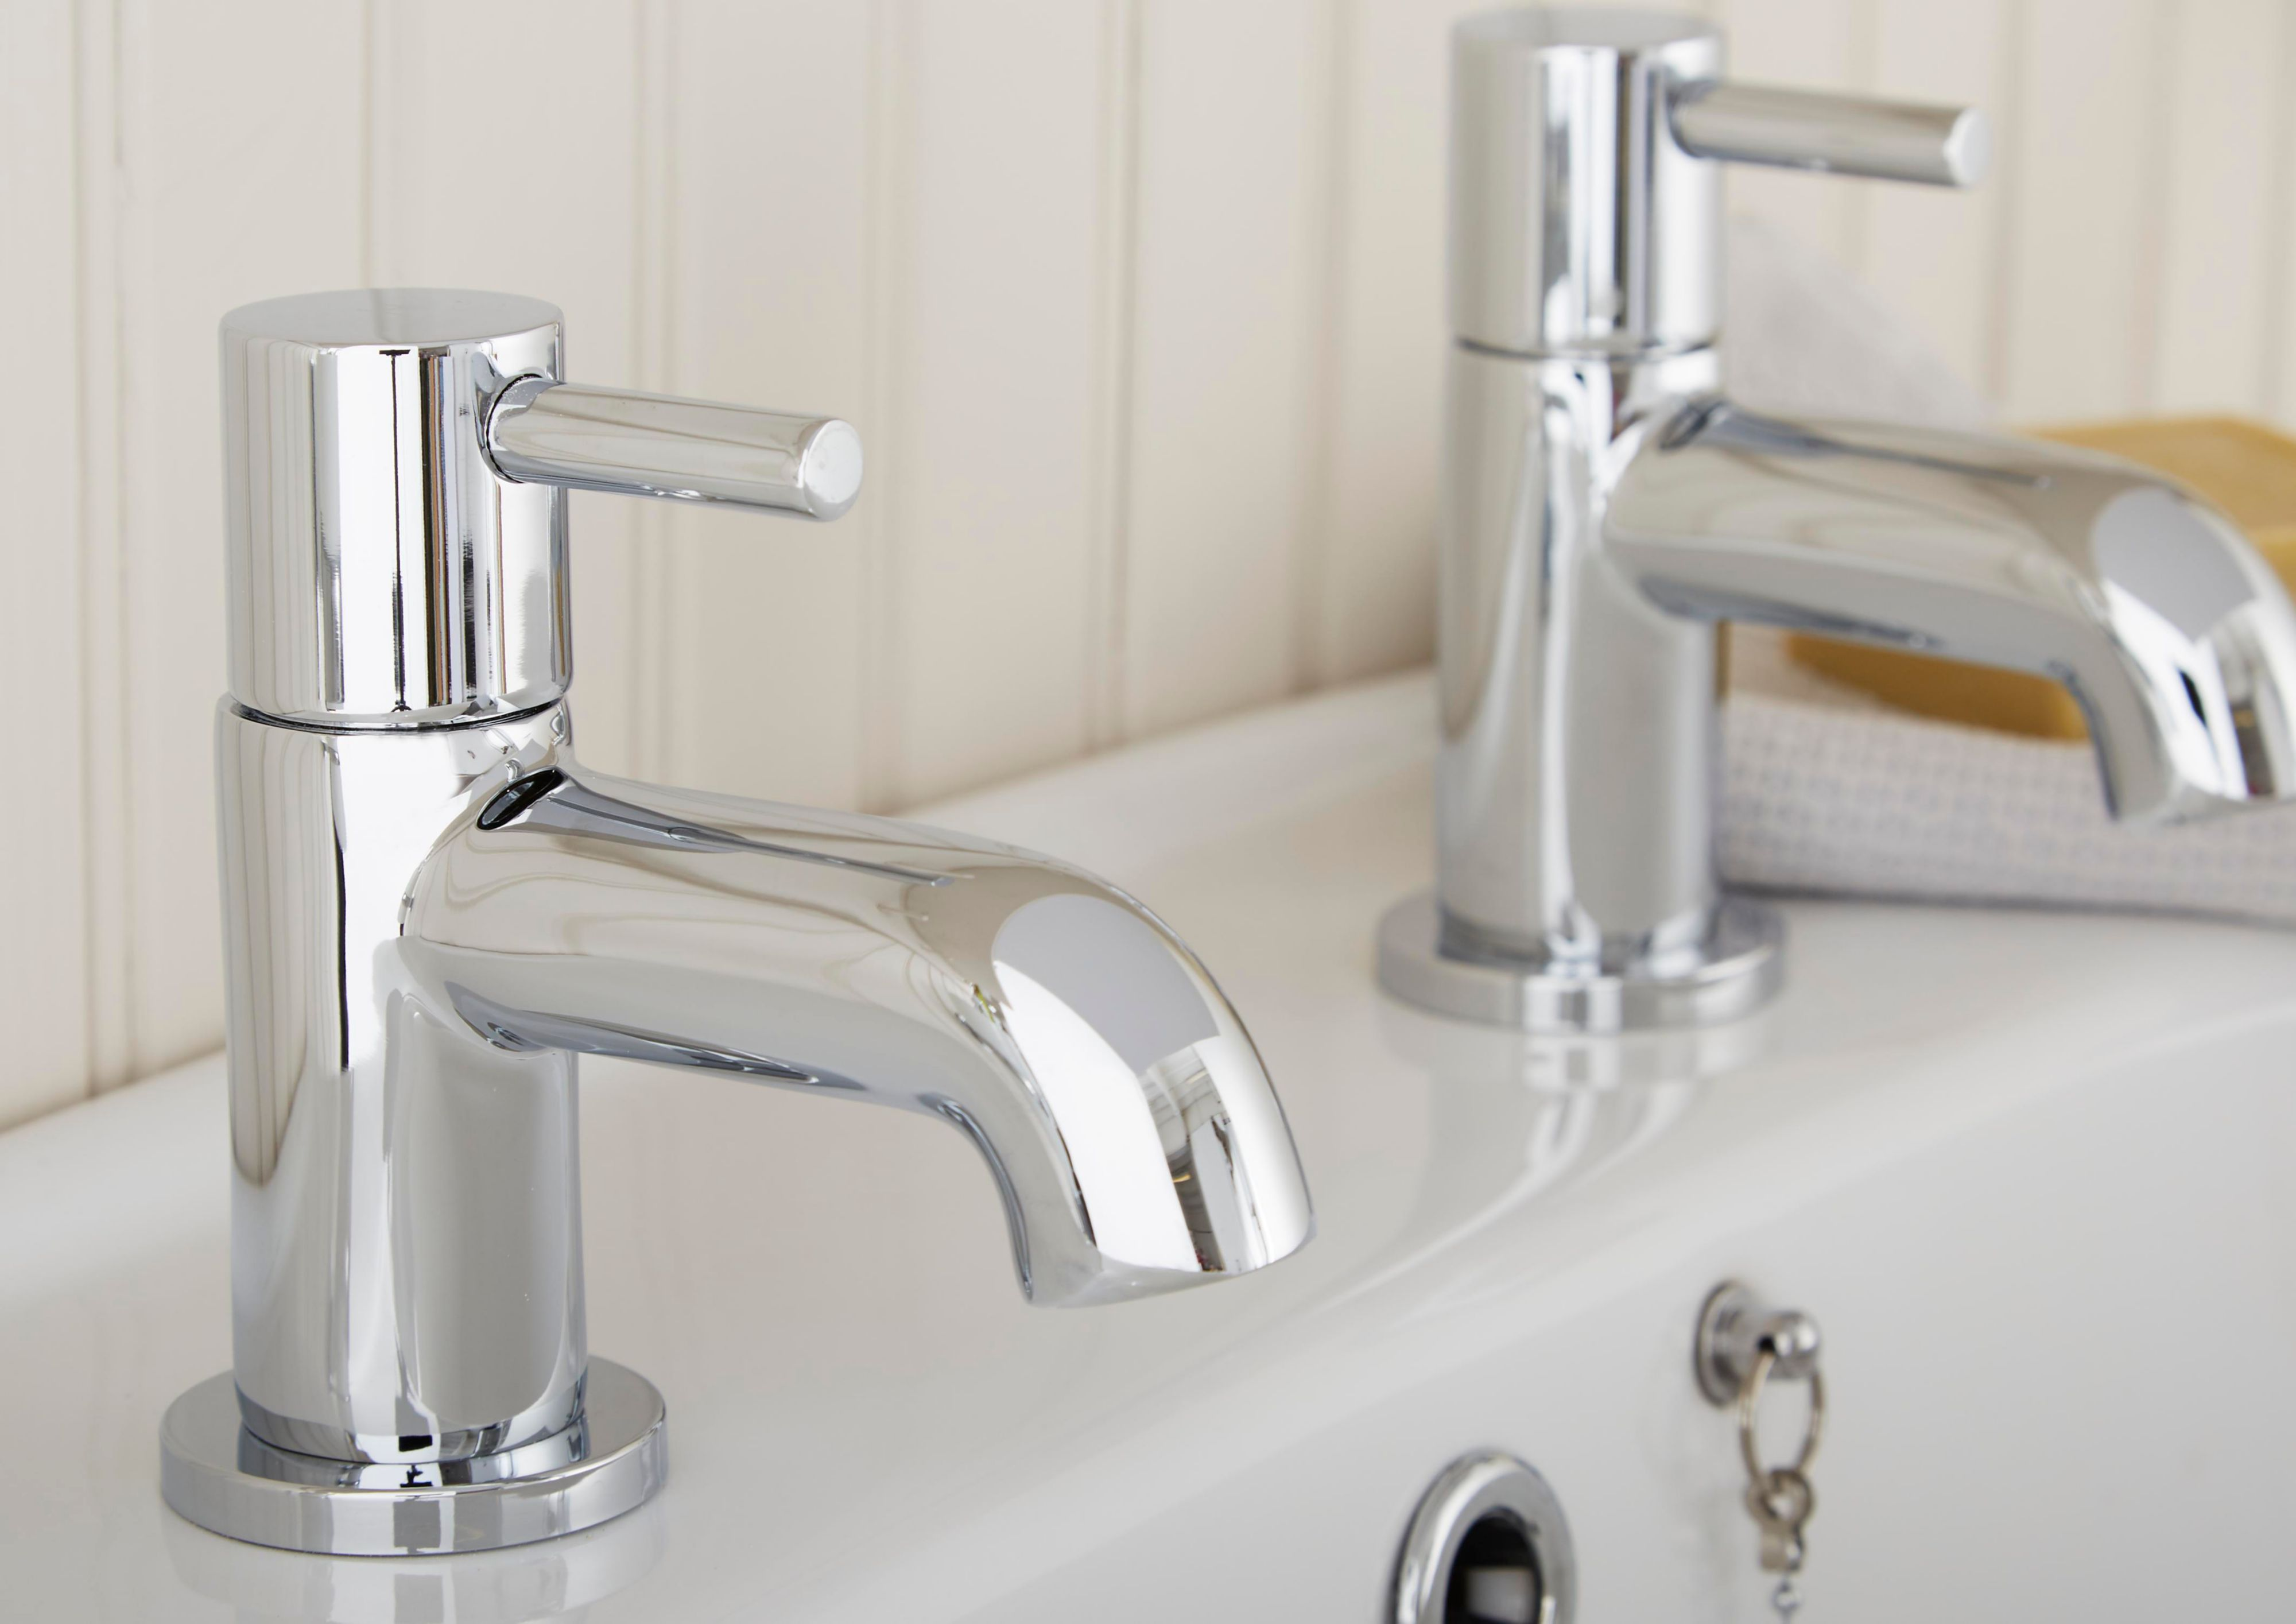 contemporary and modern bathroom taps EHUCLWG